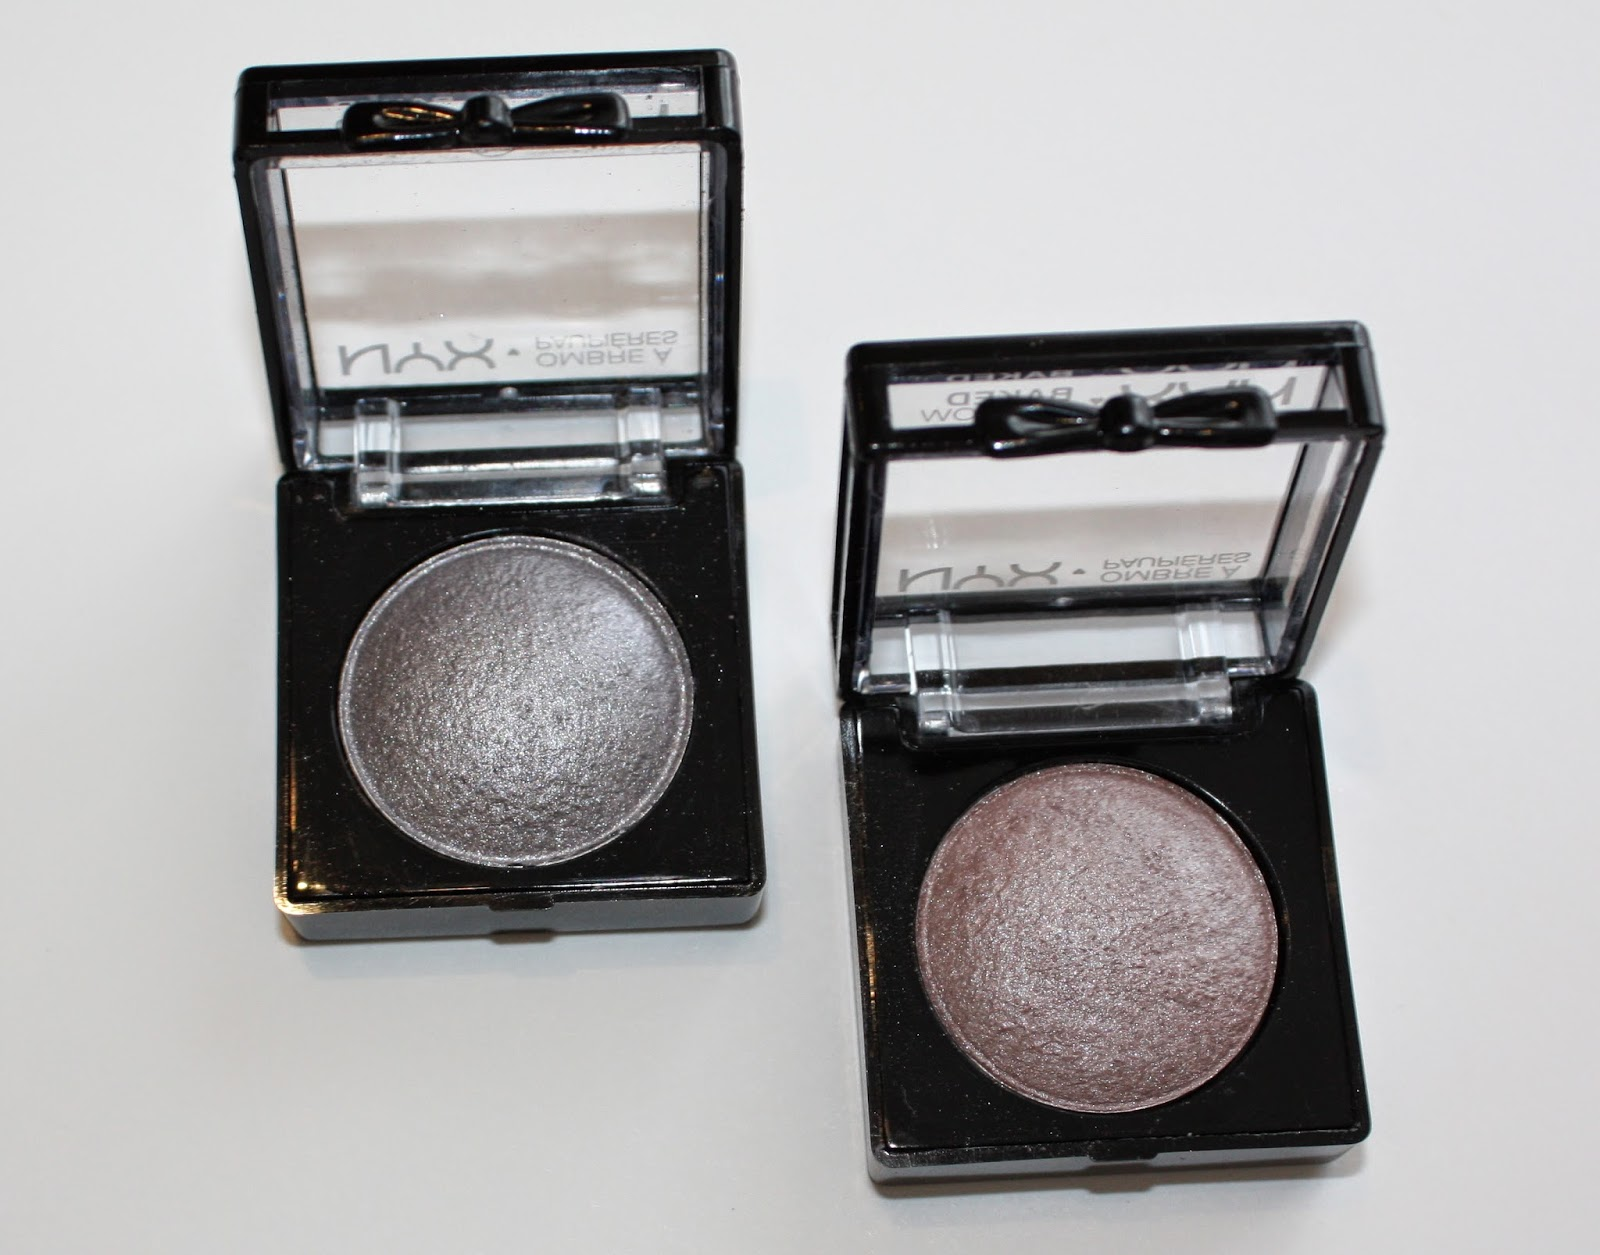 NYX Baked Eyeshadow in Death Star and Vesper Review & Swatches